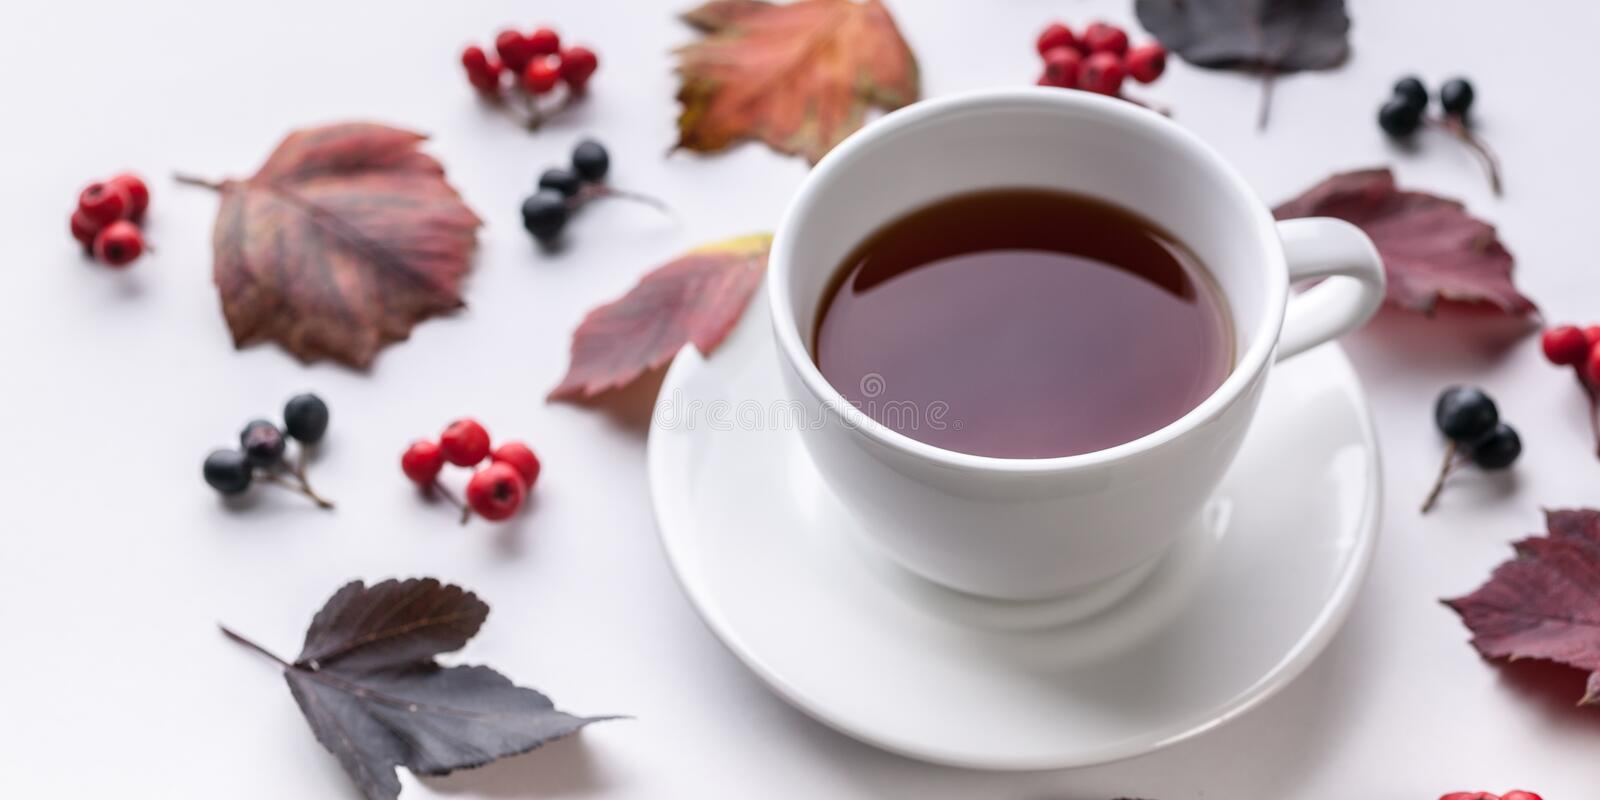 Banner: White Tea Mug, Leaves and berries. Autumn composition. Red foliage, ceramic teacup and small fruits on white background. Fallen leaf and rowanbery stock photos